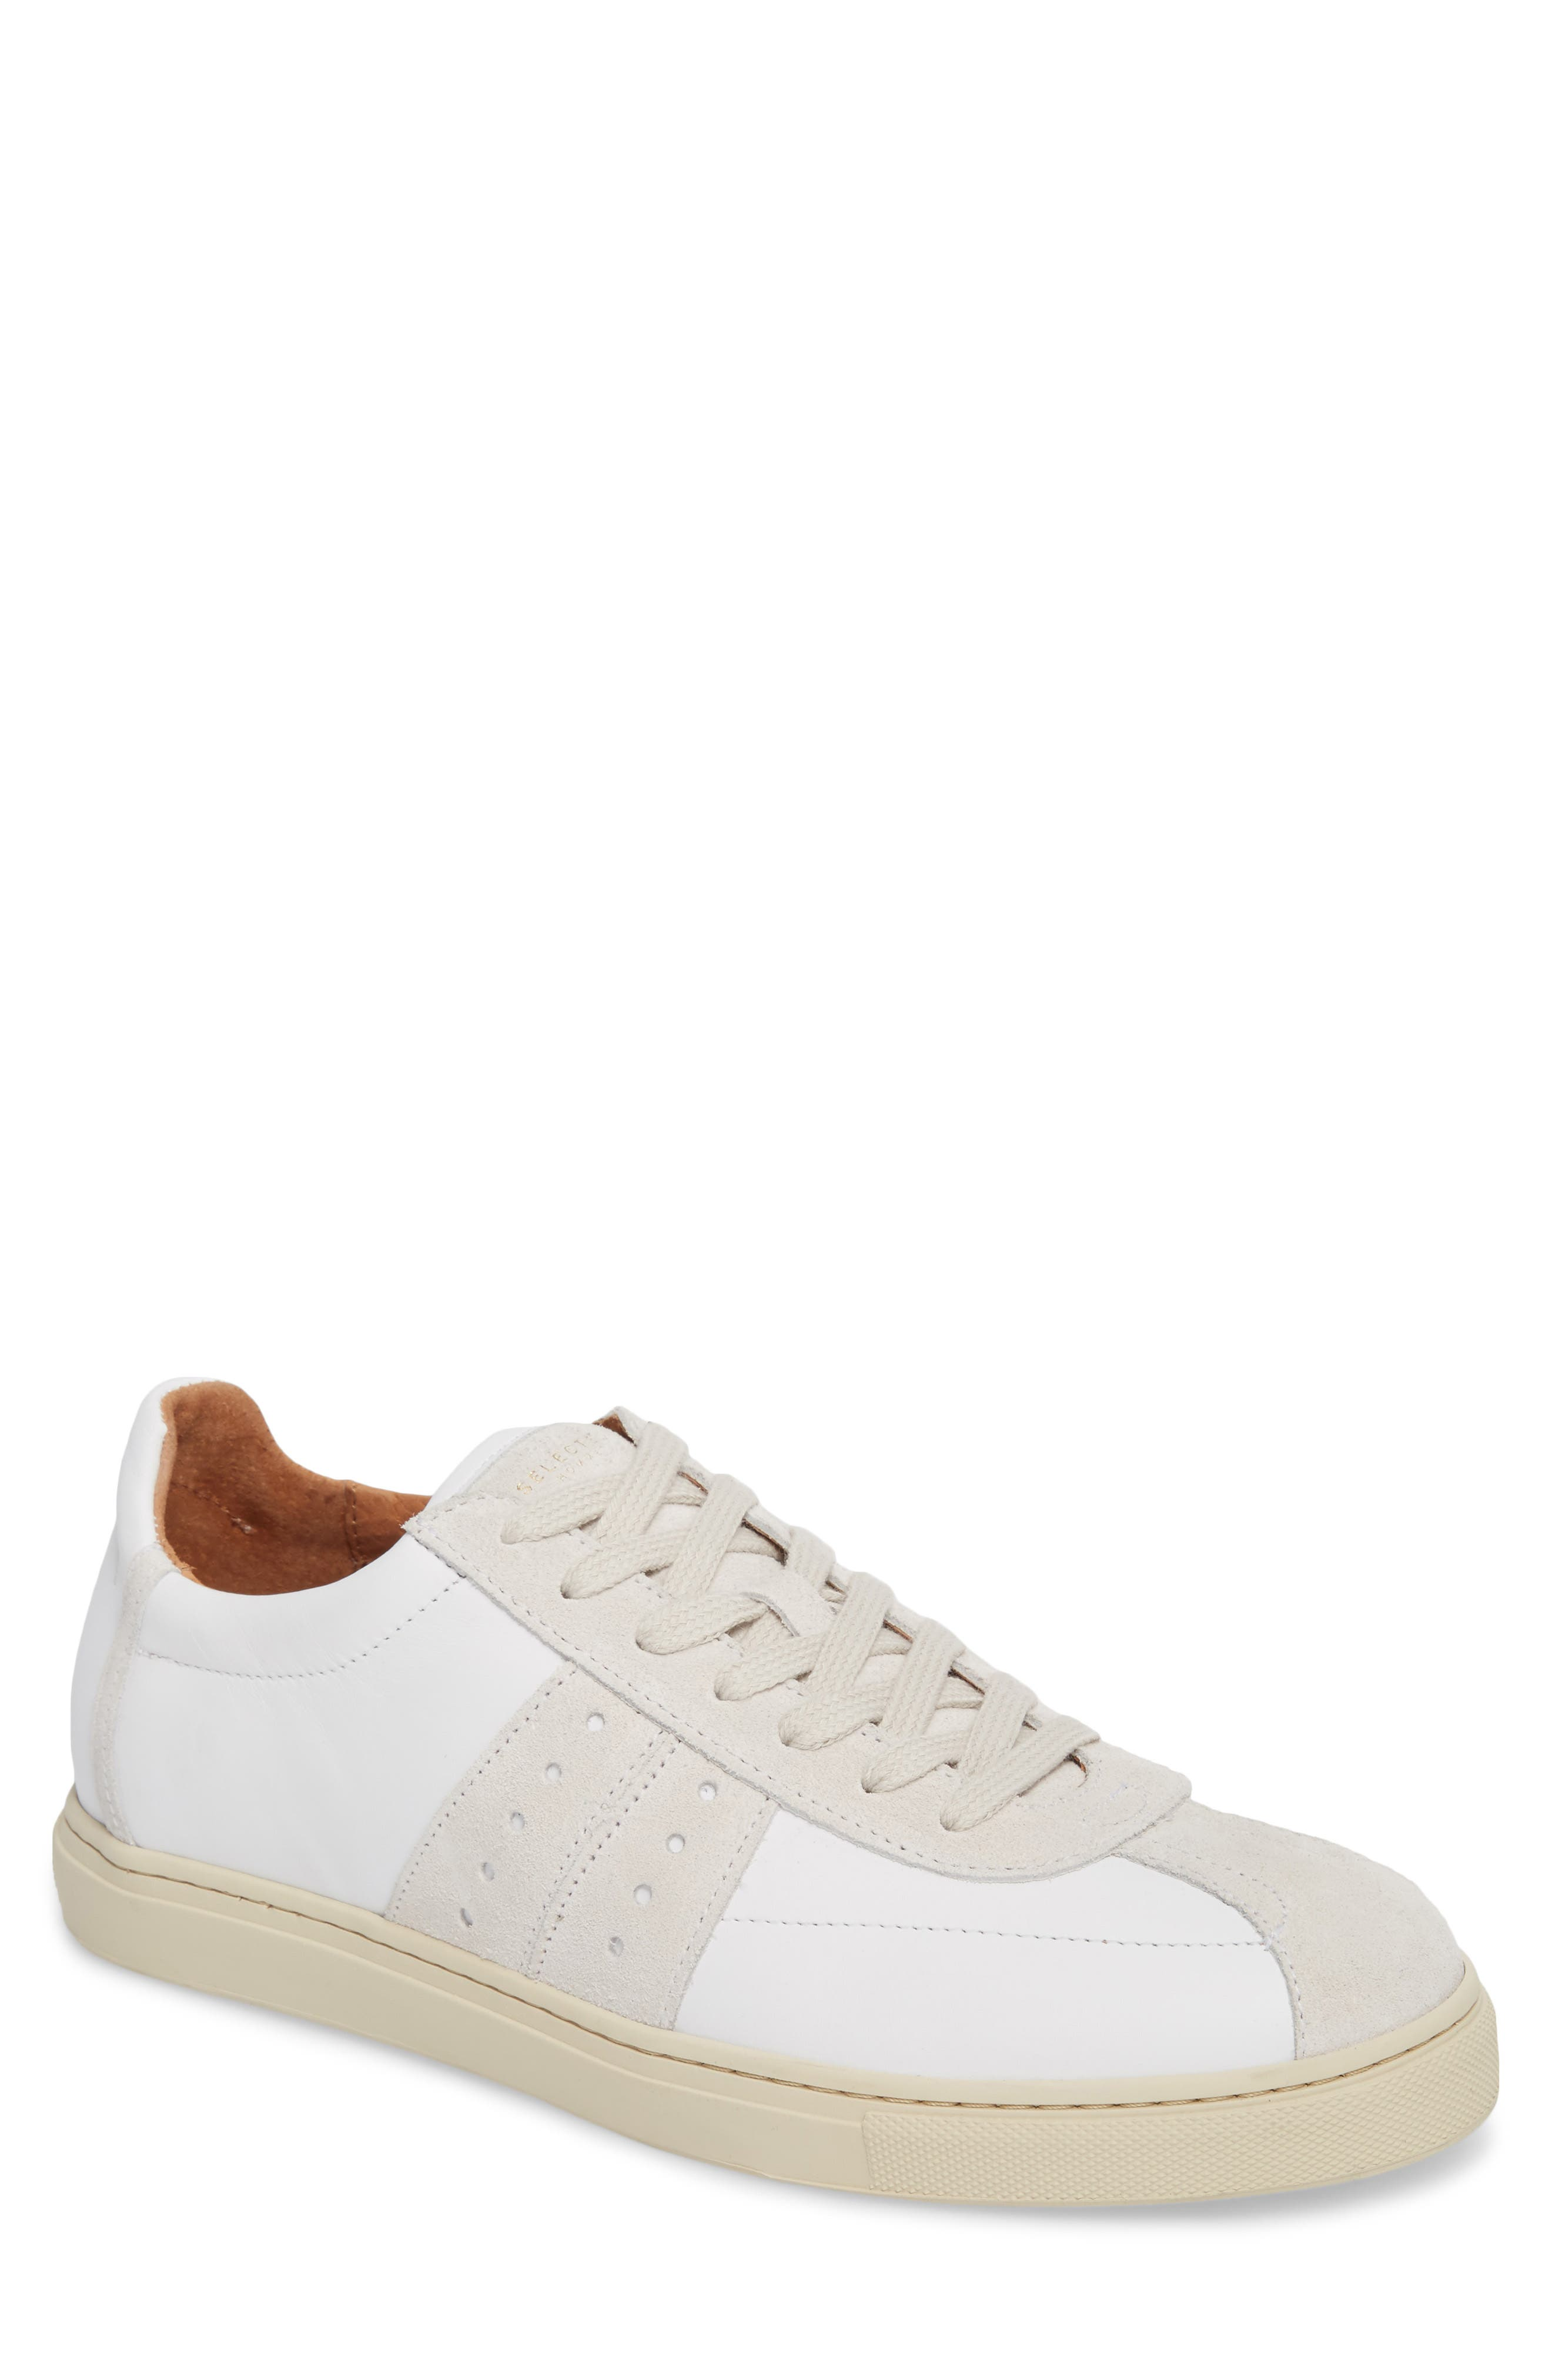 Duran New Mix Sneaker,                         Main,                         color, White Leather/ Suede